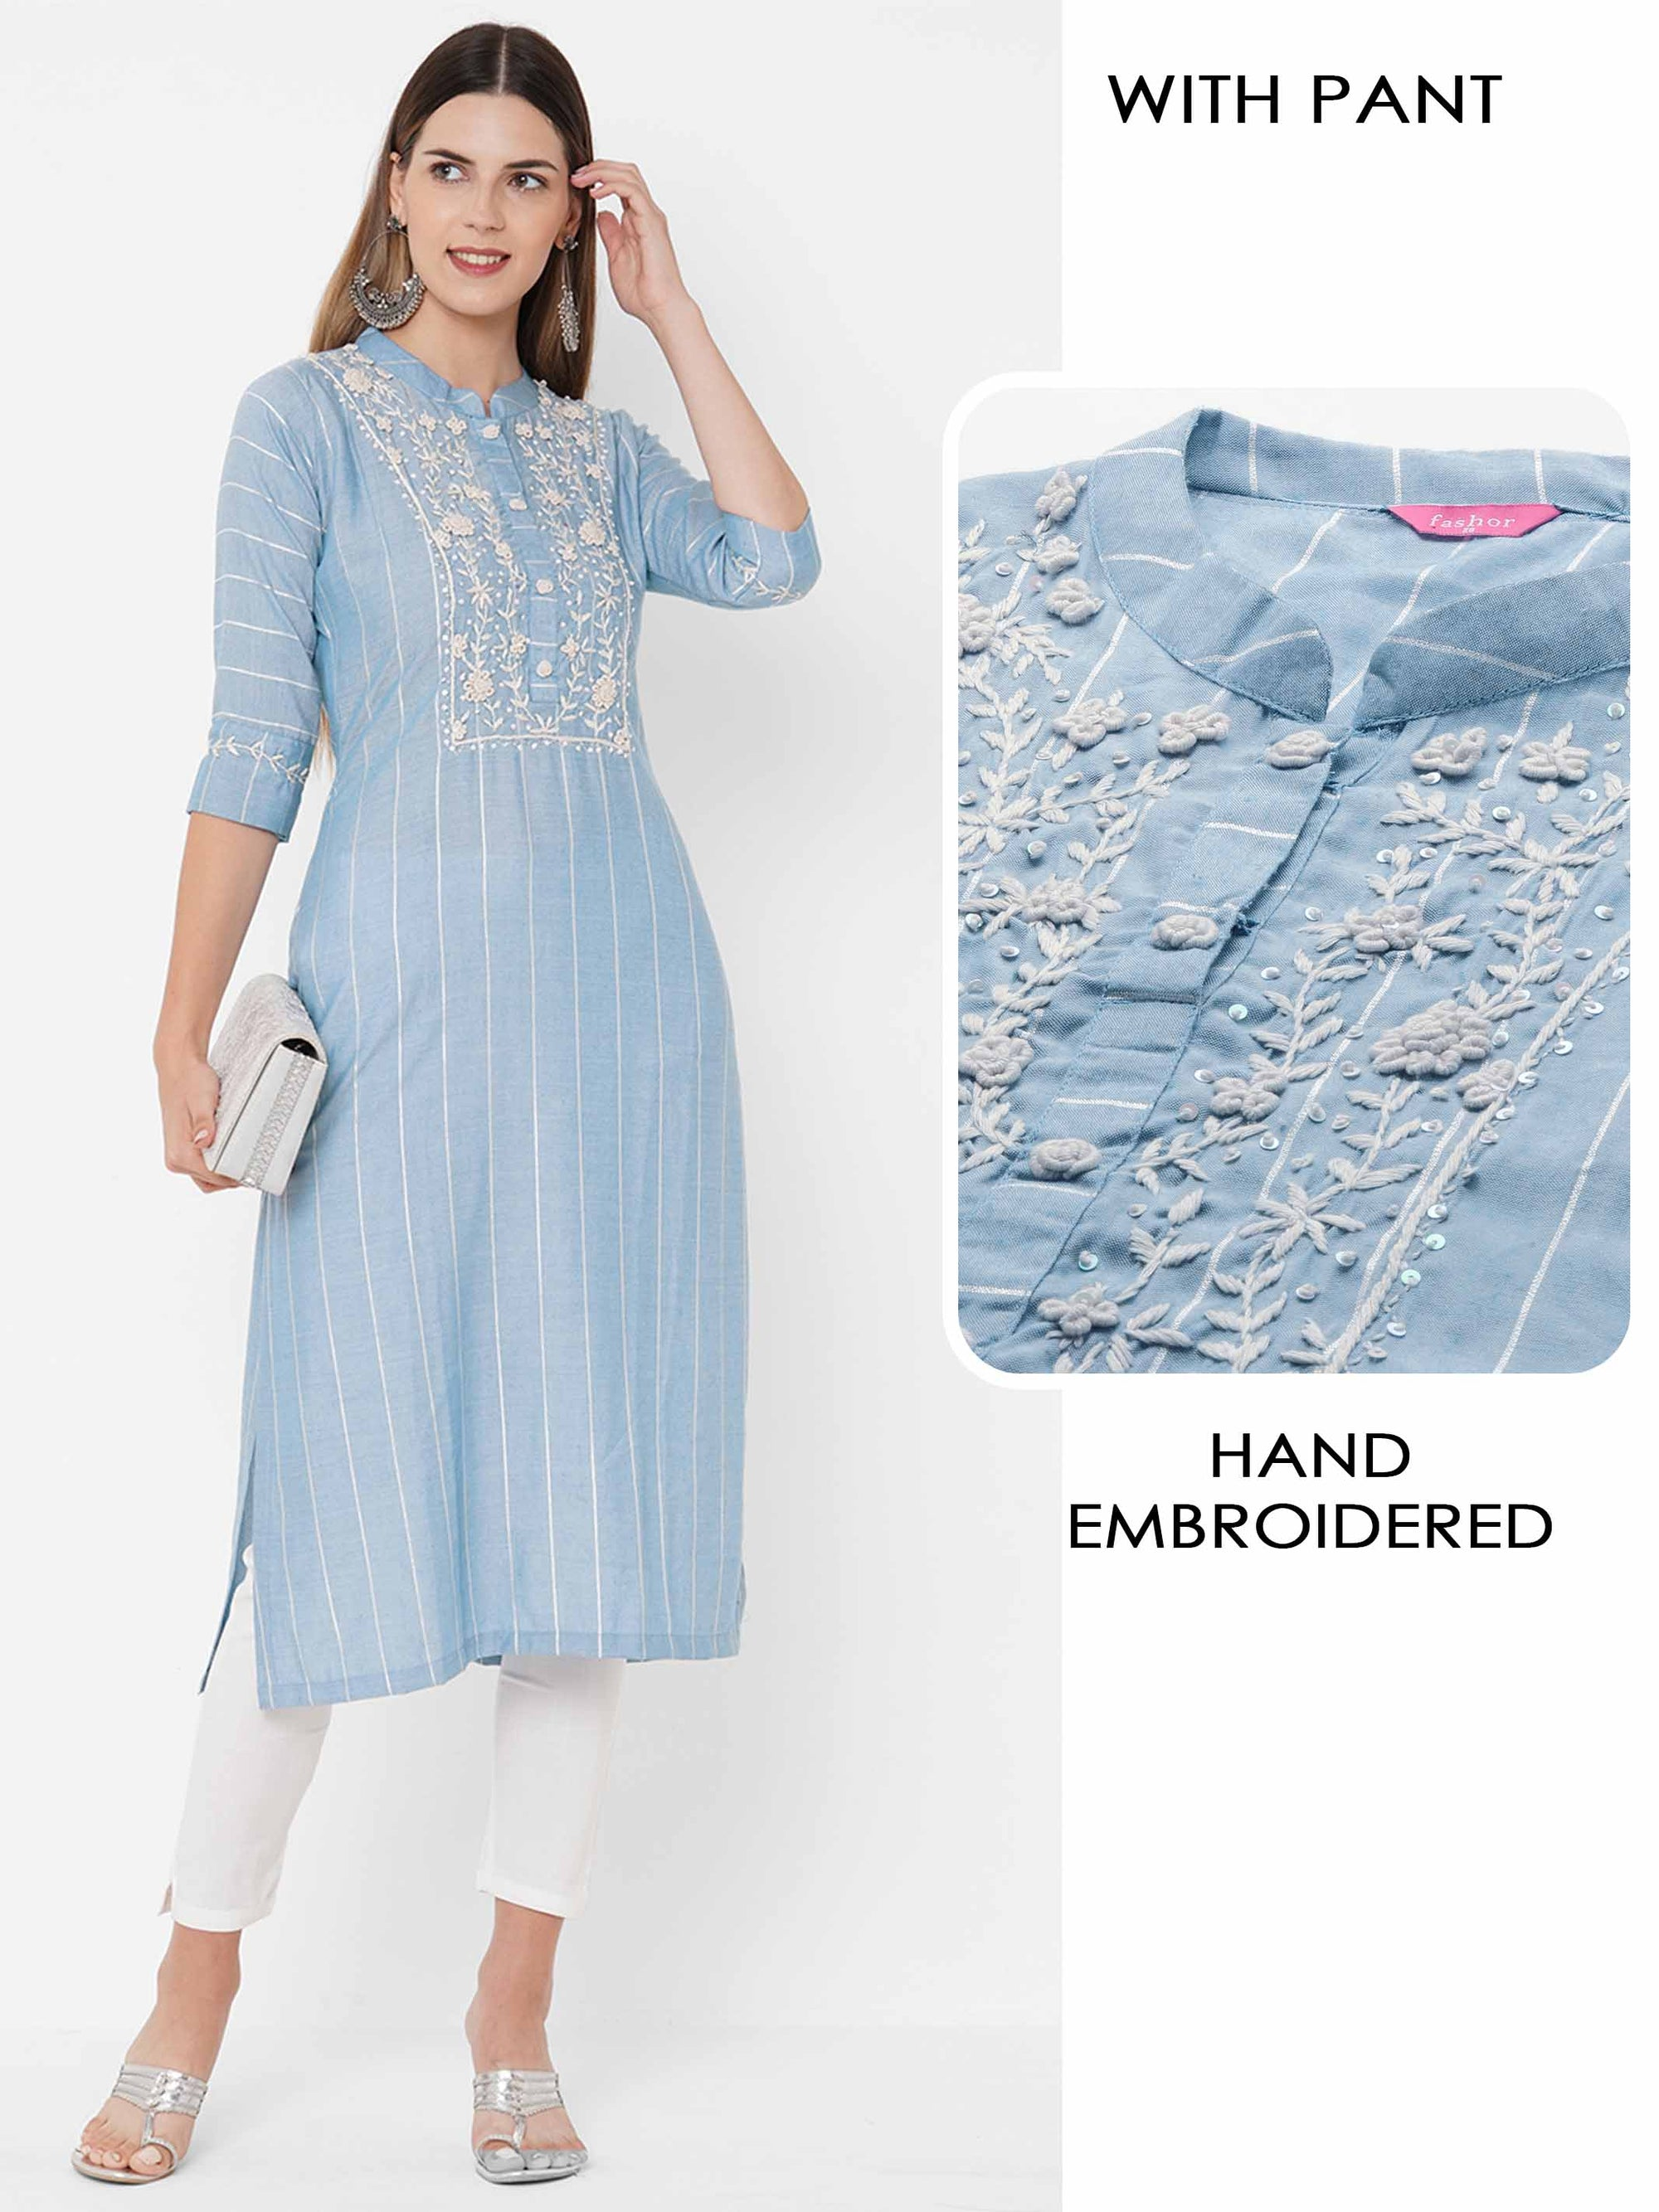 Floral Hand Embroidered & Woven Striped with Solid Stretchable Pant - Powder Blue